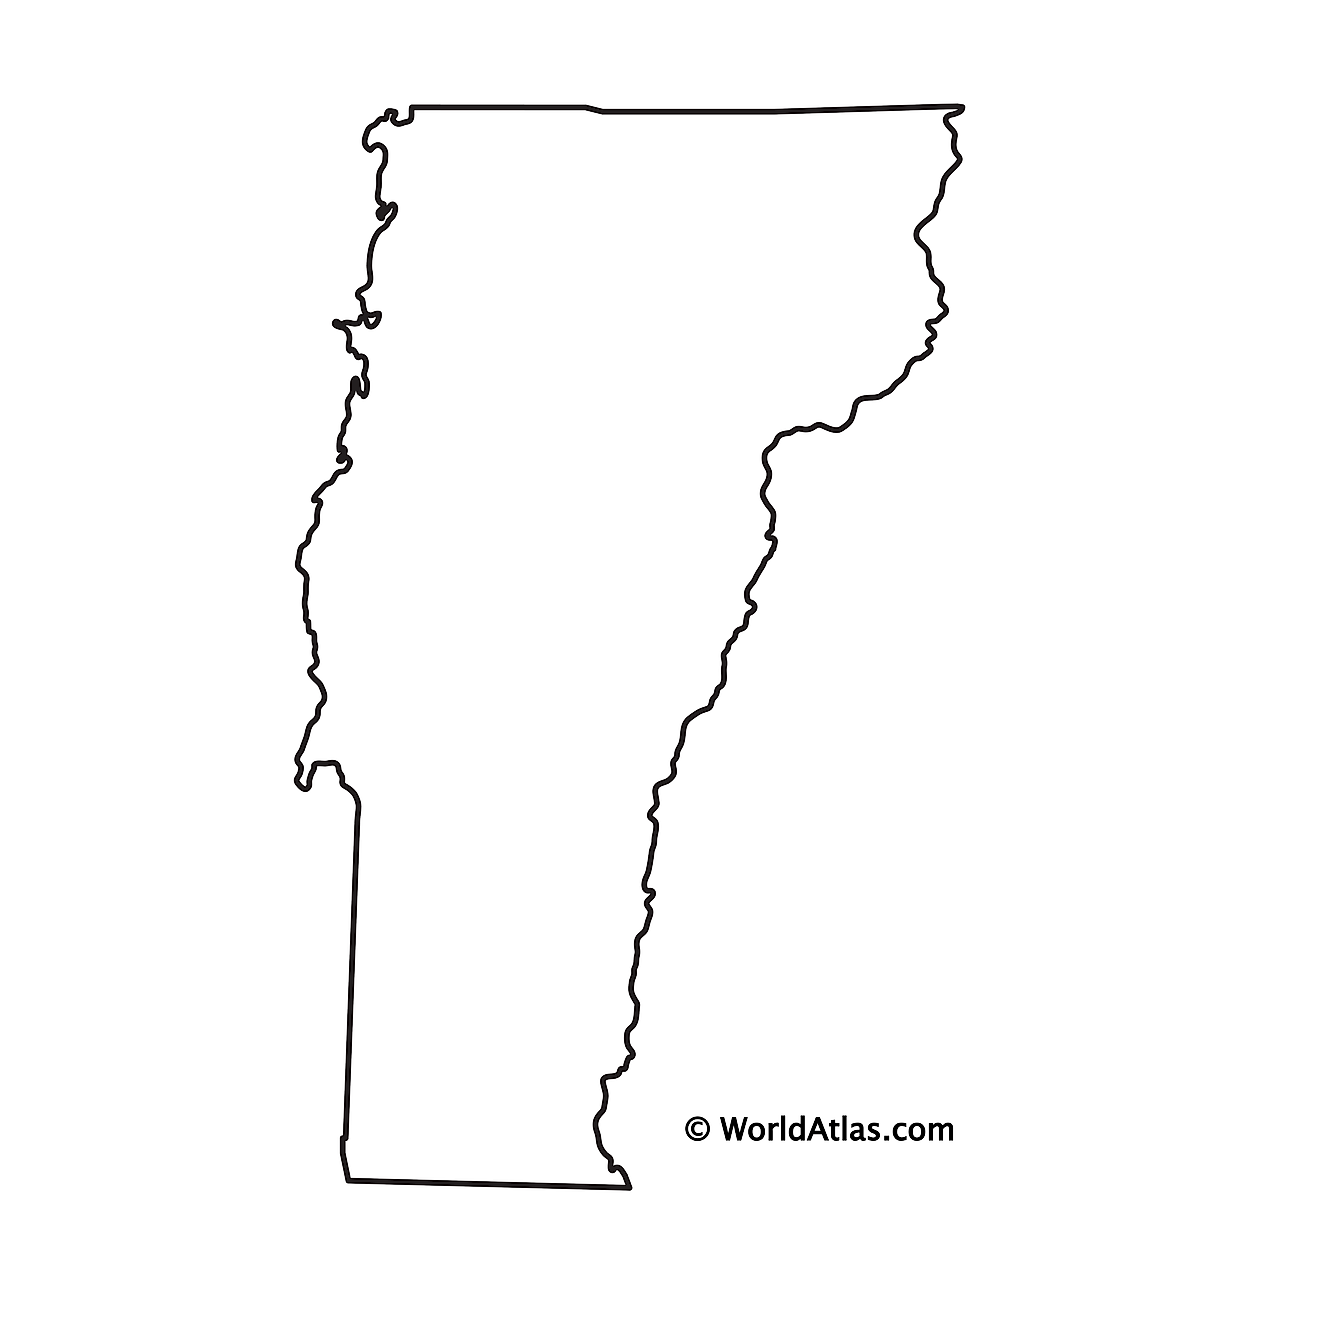 Blank Outline Map of Vermont